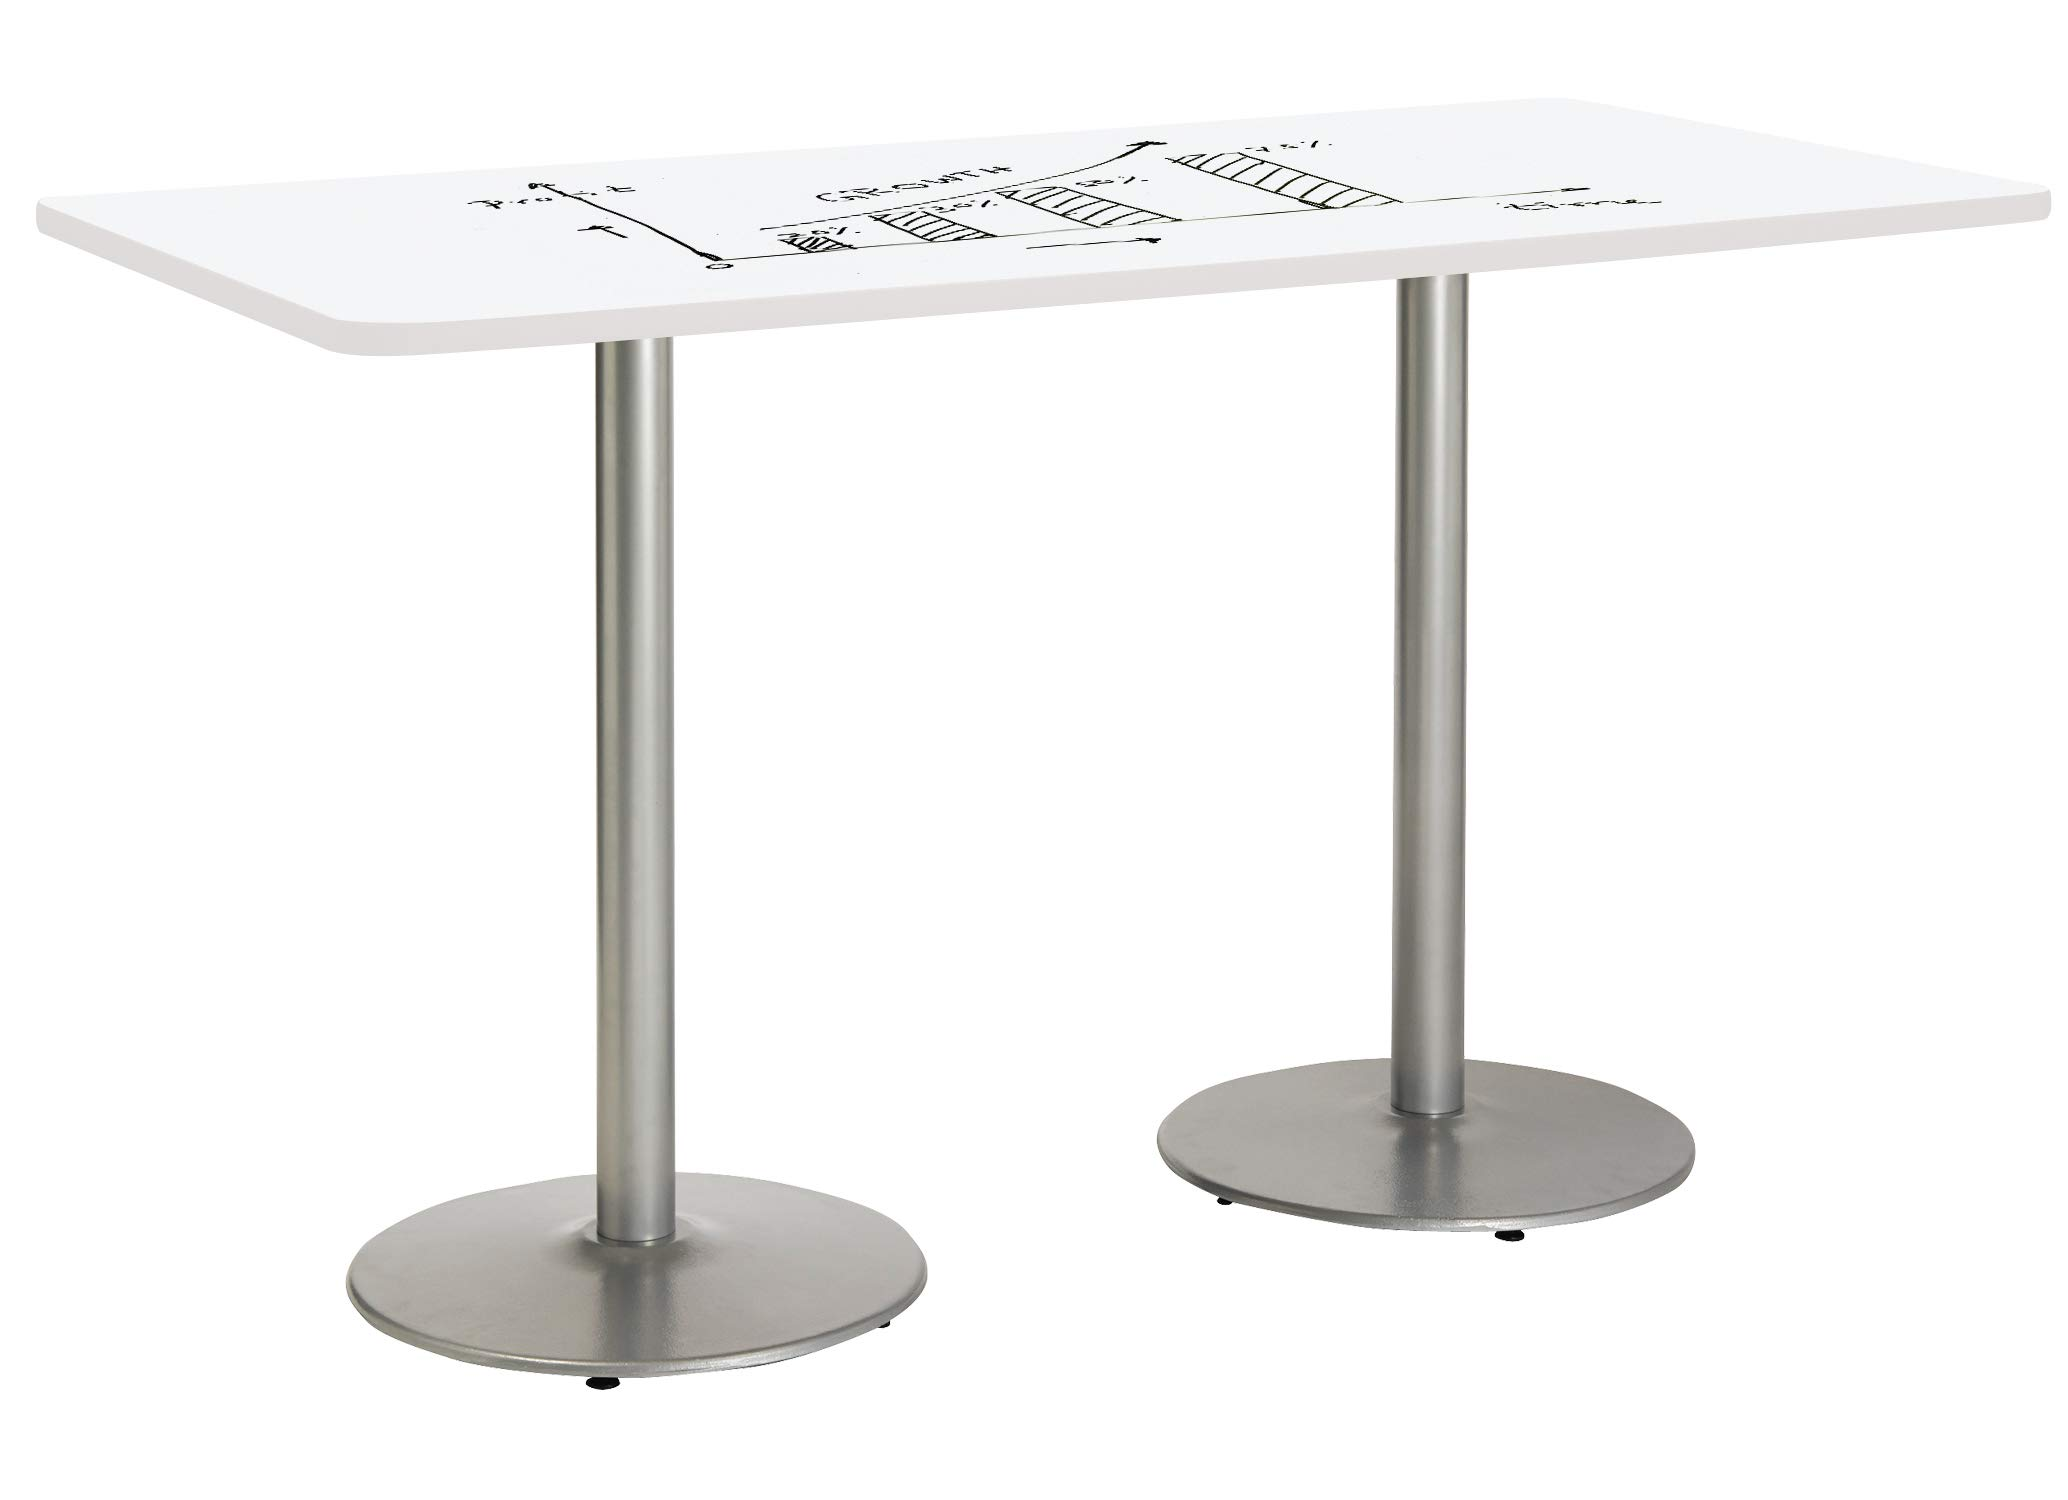 KFI T3072-B1917-SL-3105-WH-38 Whiteboard Pedestal Table, 30'' W x 42'' D x 72'' H, White by KFI